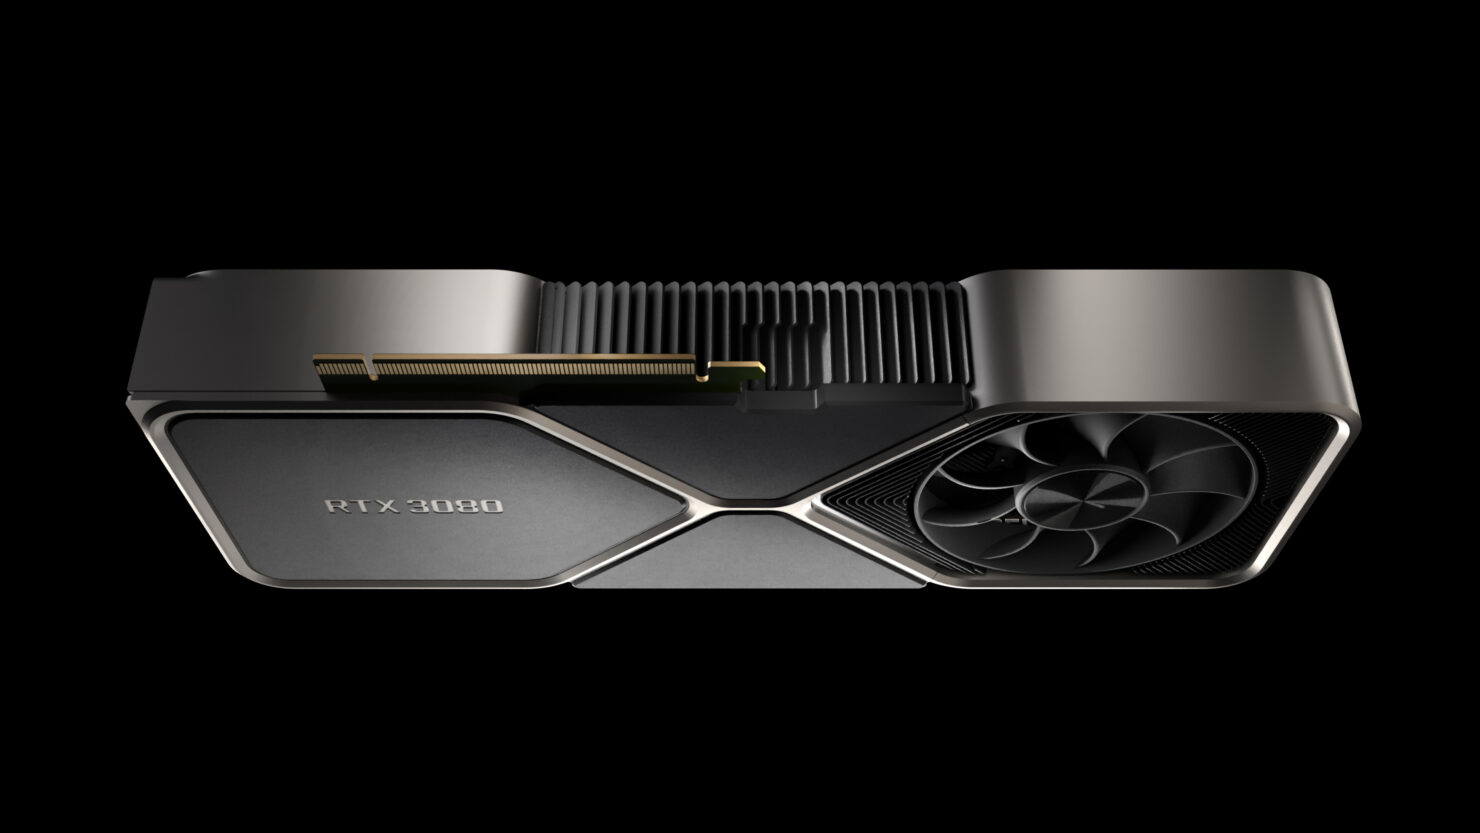 chinese-jd-retail-outlet-only-able-to-sell-less-than-1000-nvidia-geforce-rtx-3080-units-in-october,-fake-sales-figures-reported